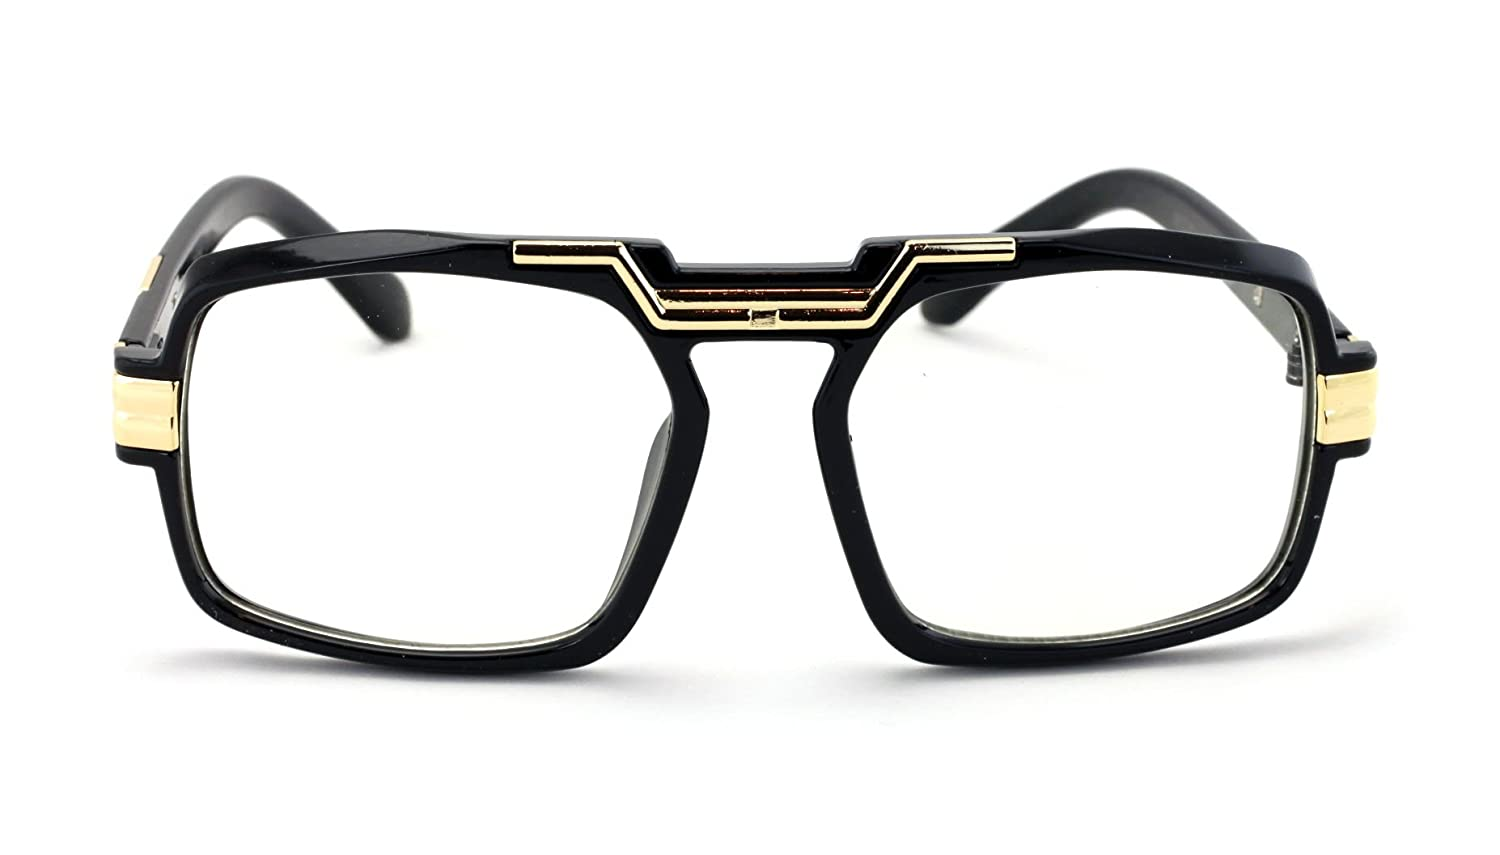 cda56bbcd5f9 Amazon.com  Black Gold Entertainer Hipster Clear Lens Glasses with Metal  Trimming - Nerd Eyewear  Clothing